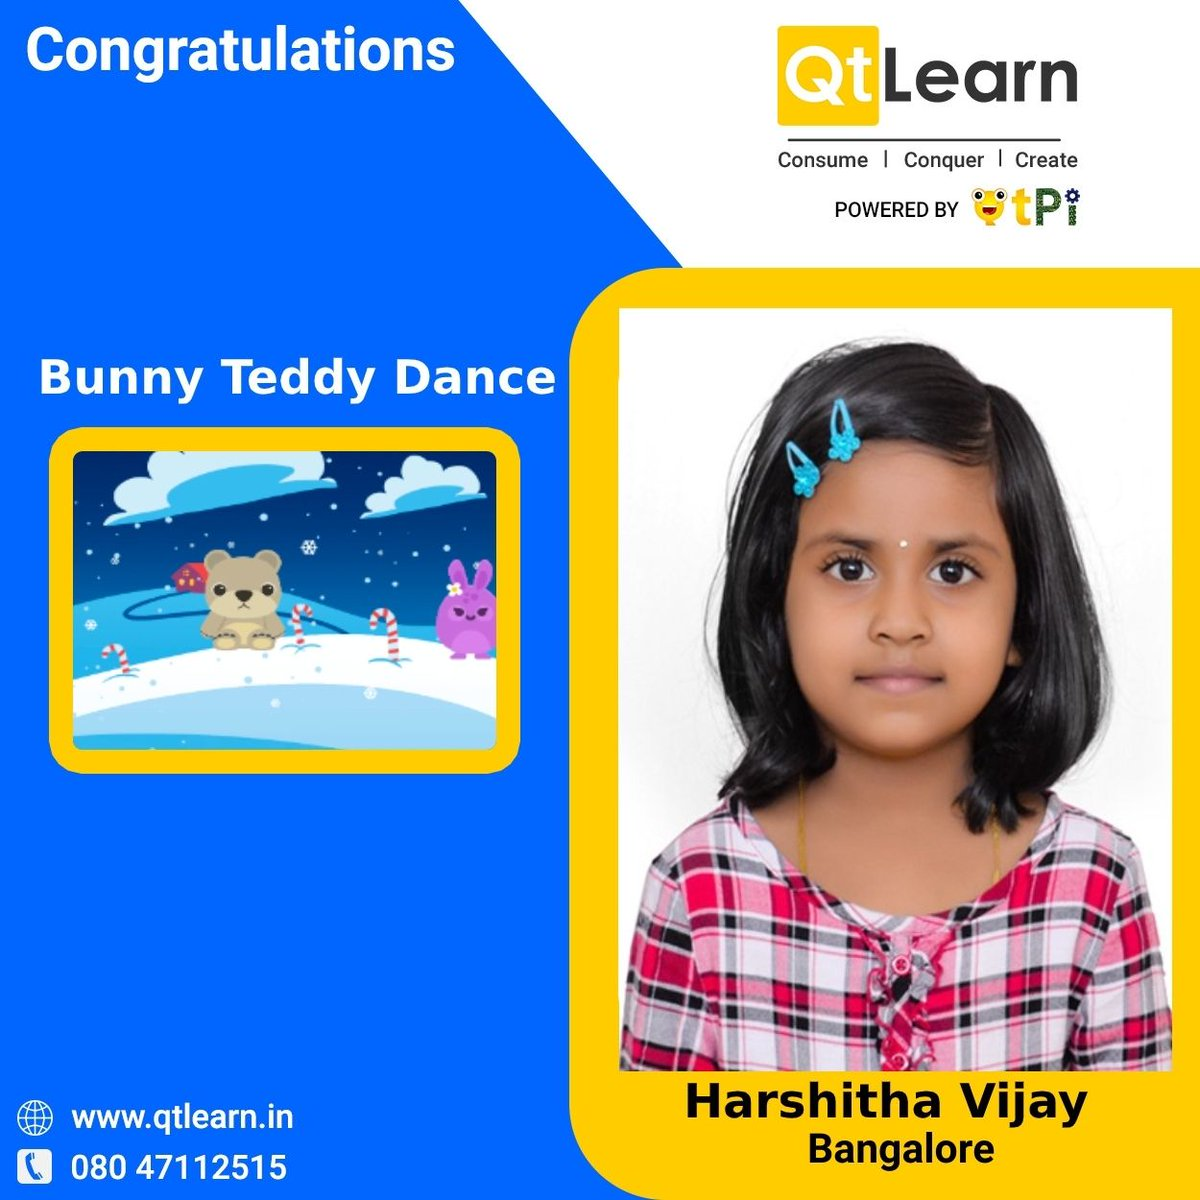 Harshitha Vijay of BRS Global School, Bengaluru loves #coding & creates her own apps. 😊  Try an Hour of #coding trial class for only 𝐑𝐬 𝟗𝟗/-  𝐑𝐞𝐠𝐢𝐬𝐭𝐞𝐫 𝐇𝐞𝐫𝐞: https://t.co/DgX0c2bpur  #100DaysOfCode #AI #STEM #codingcult #robotics #codingforkids #appdevelopment https://t.co/aia5YE9mot